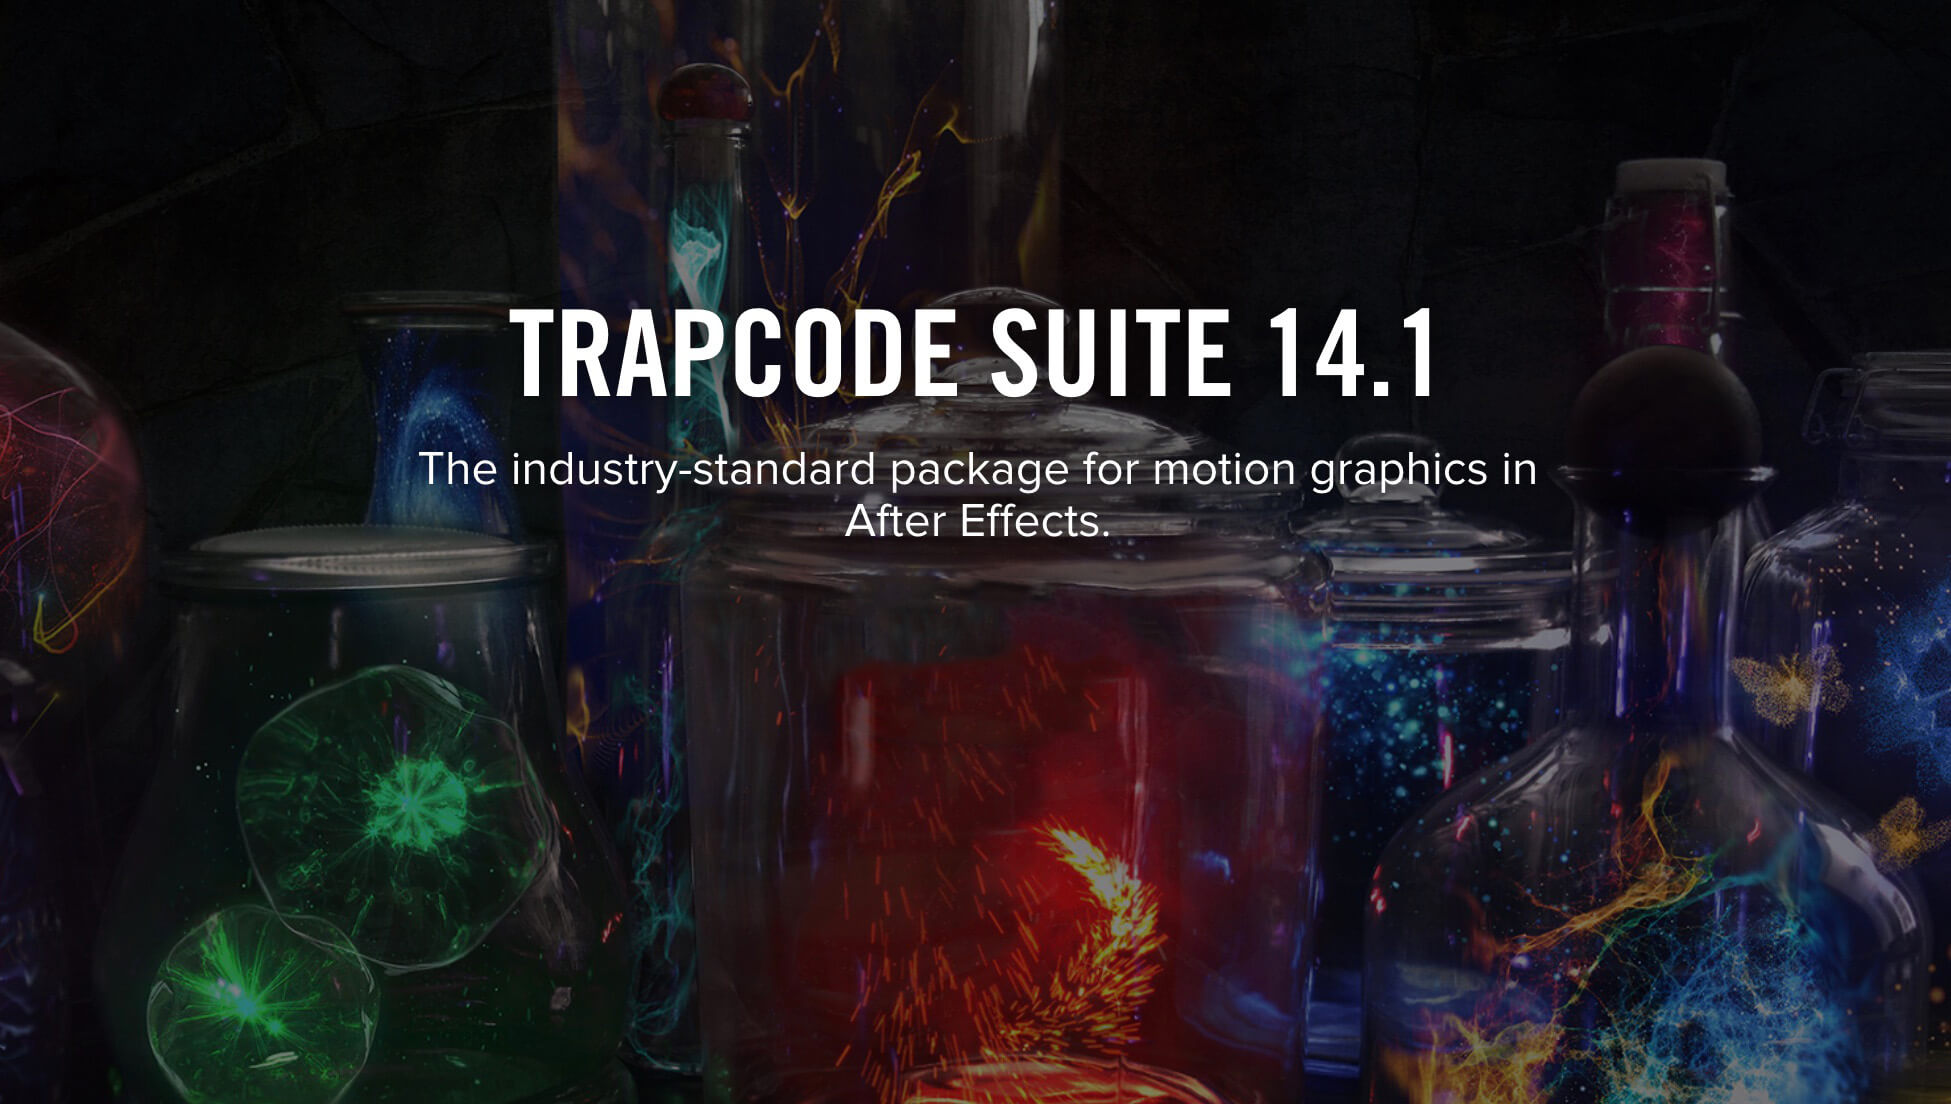 Red giant trapcode suite 14 mac | Red Giant Trapcode Suite 14 Serial